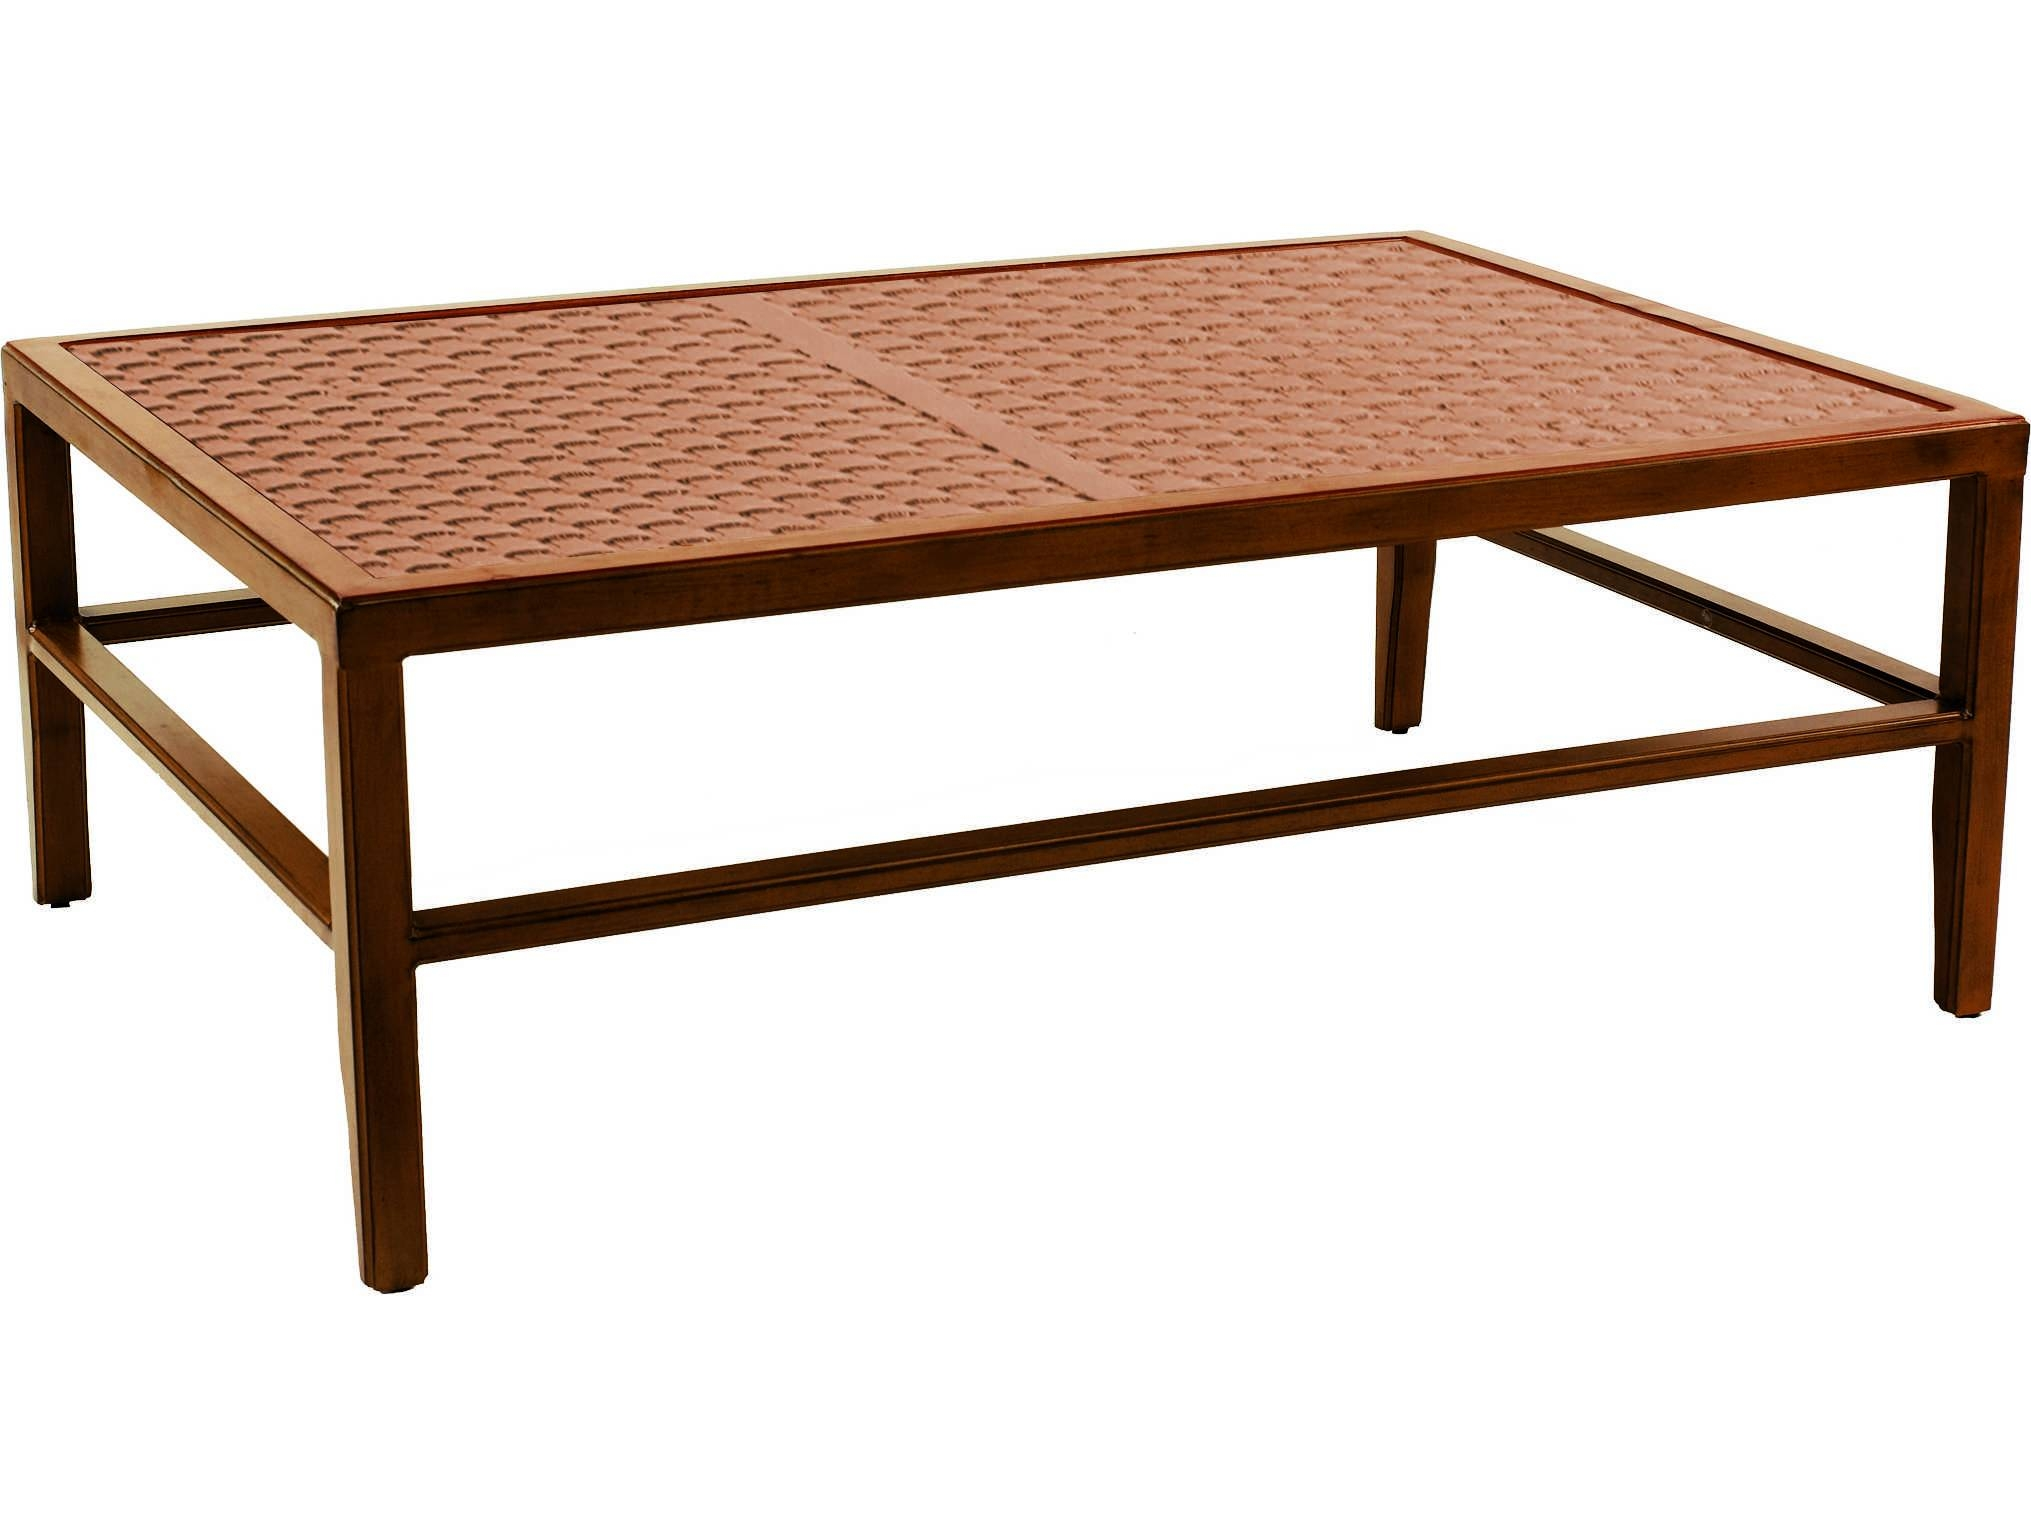 Castelle Transitional Cast Aluminum 51.5 X 35.5 Large Rectangular inside Large Rectangular Coffee Tables (Image 5 of 30)